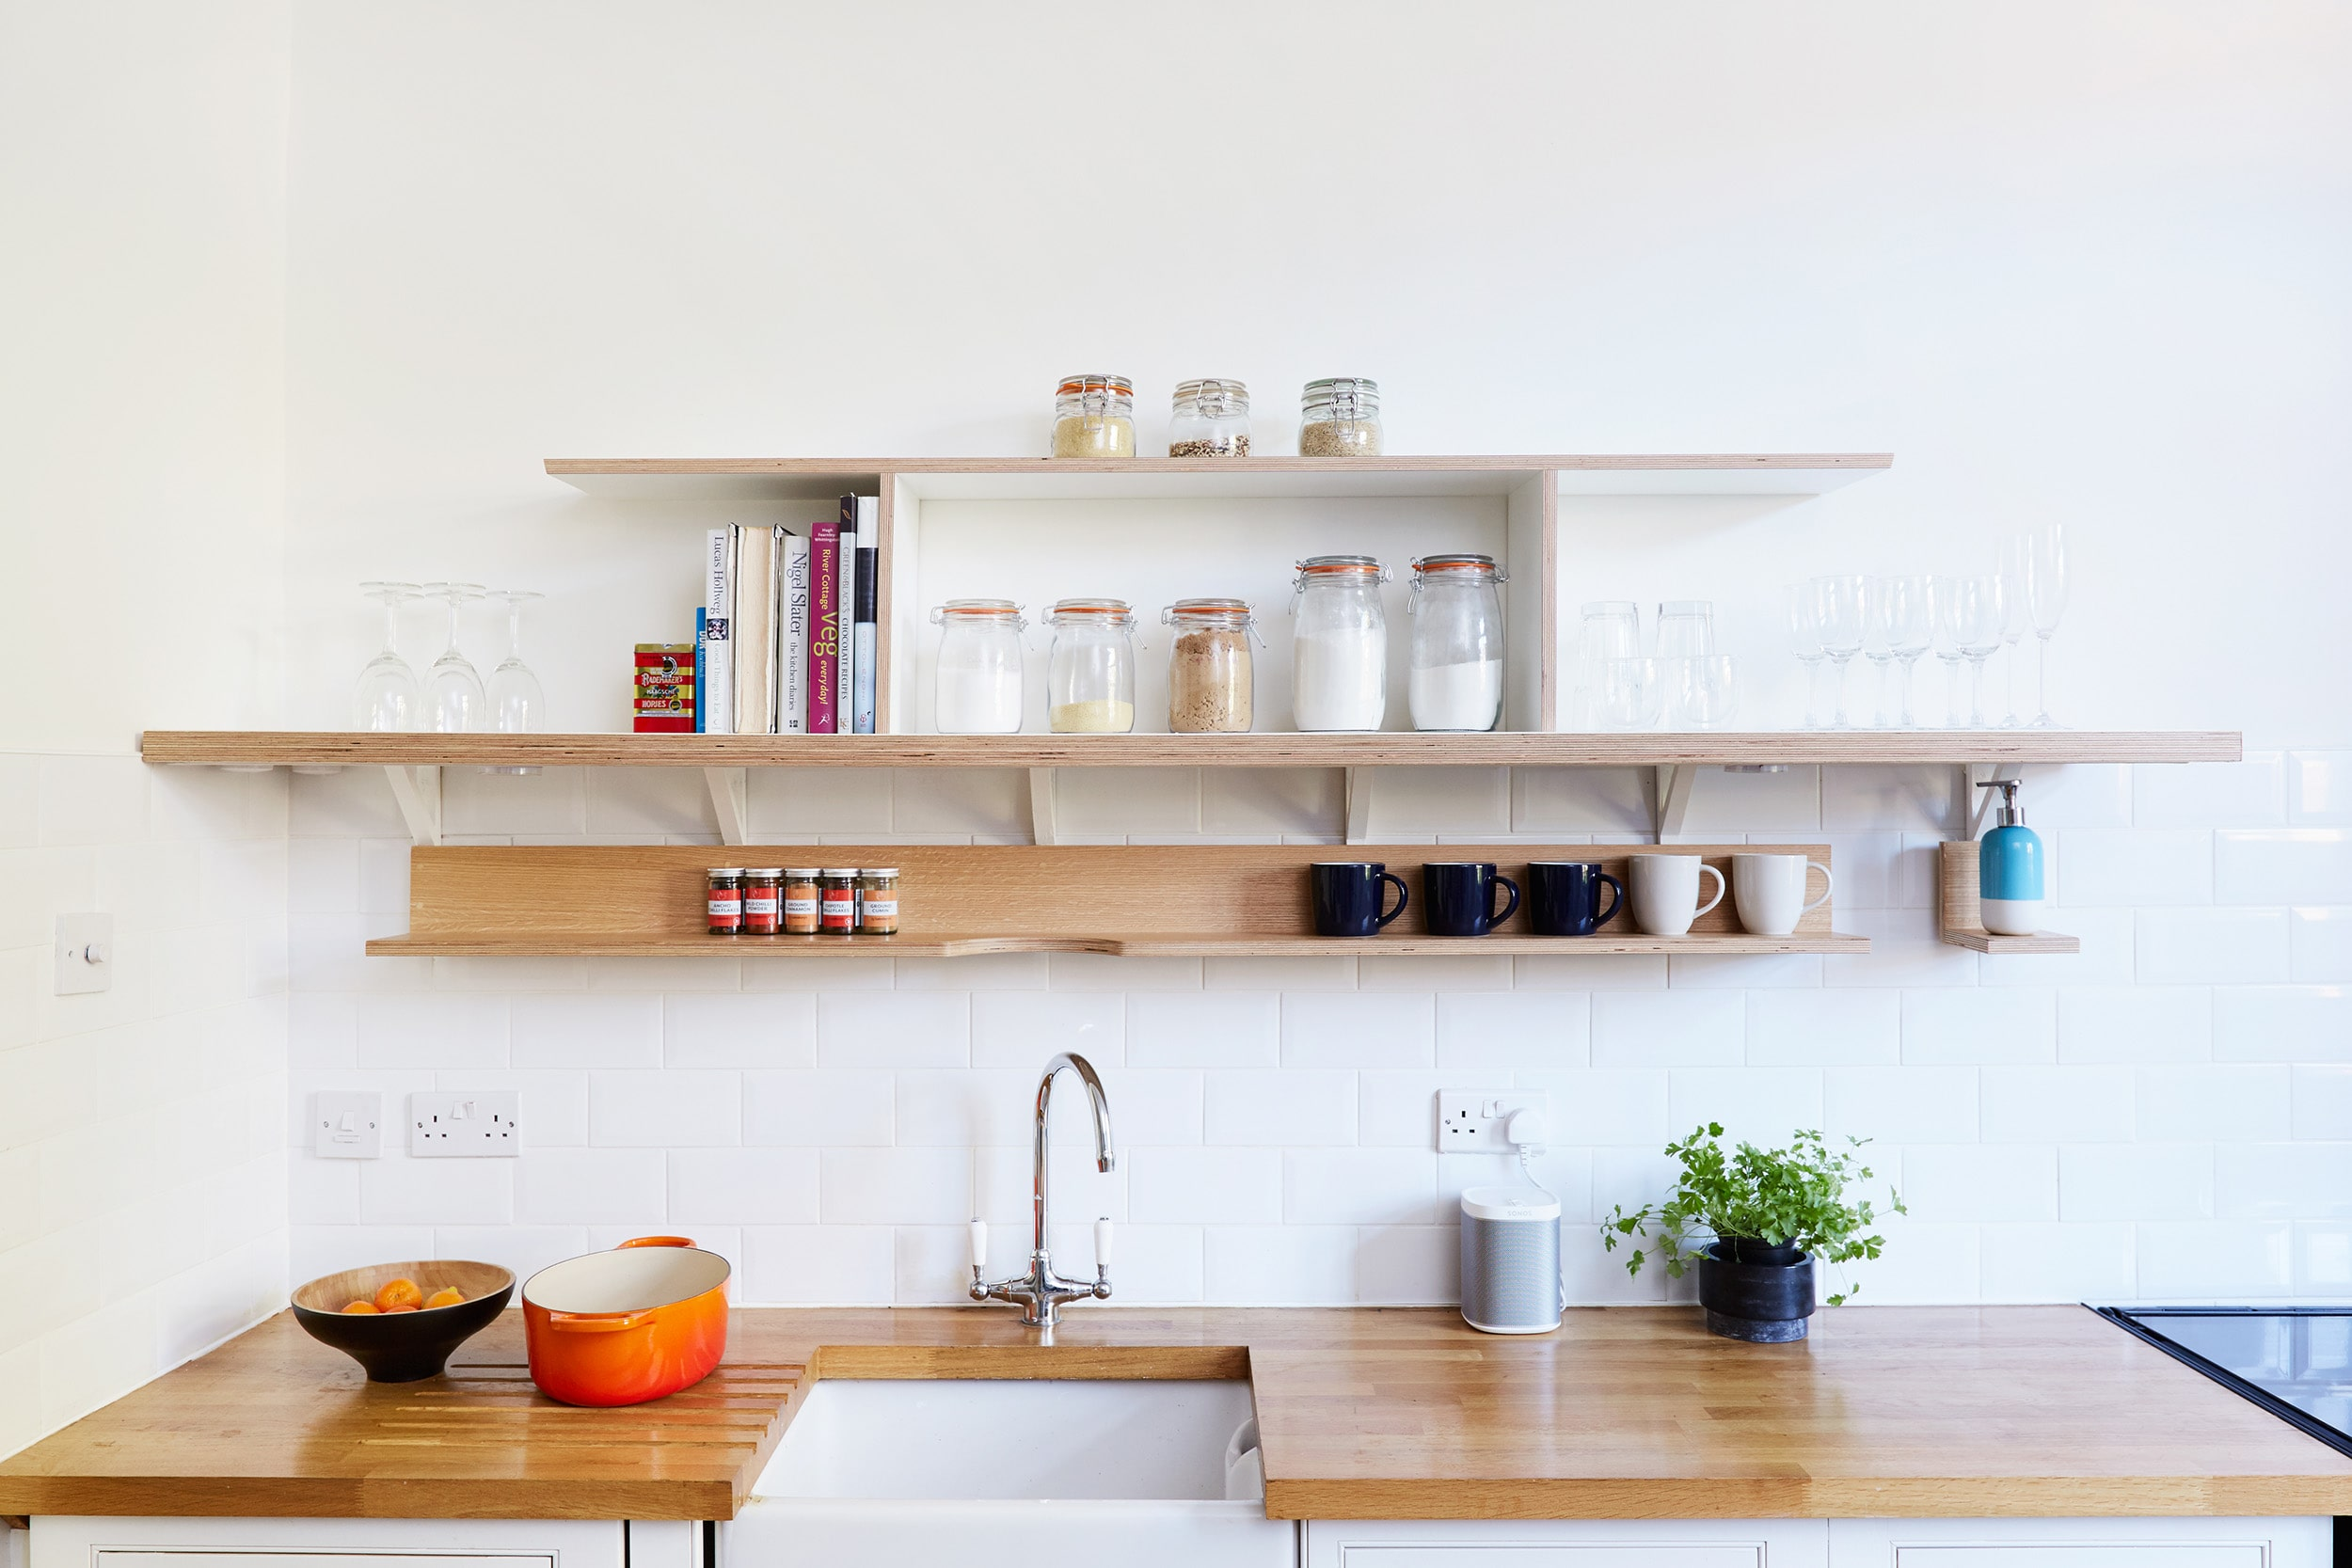 This bespoke plywood shelving system was shown in  The Sunday Times  as part of a feature on The Beautiful Everyday.